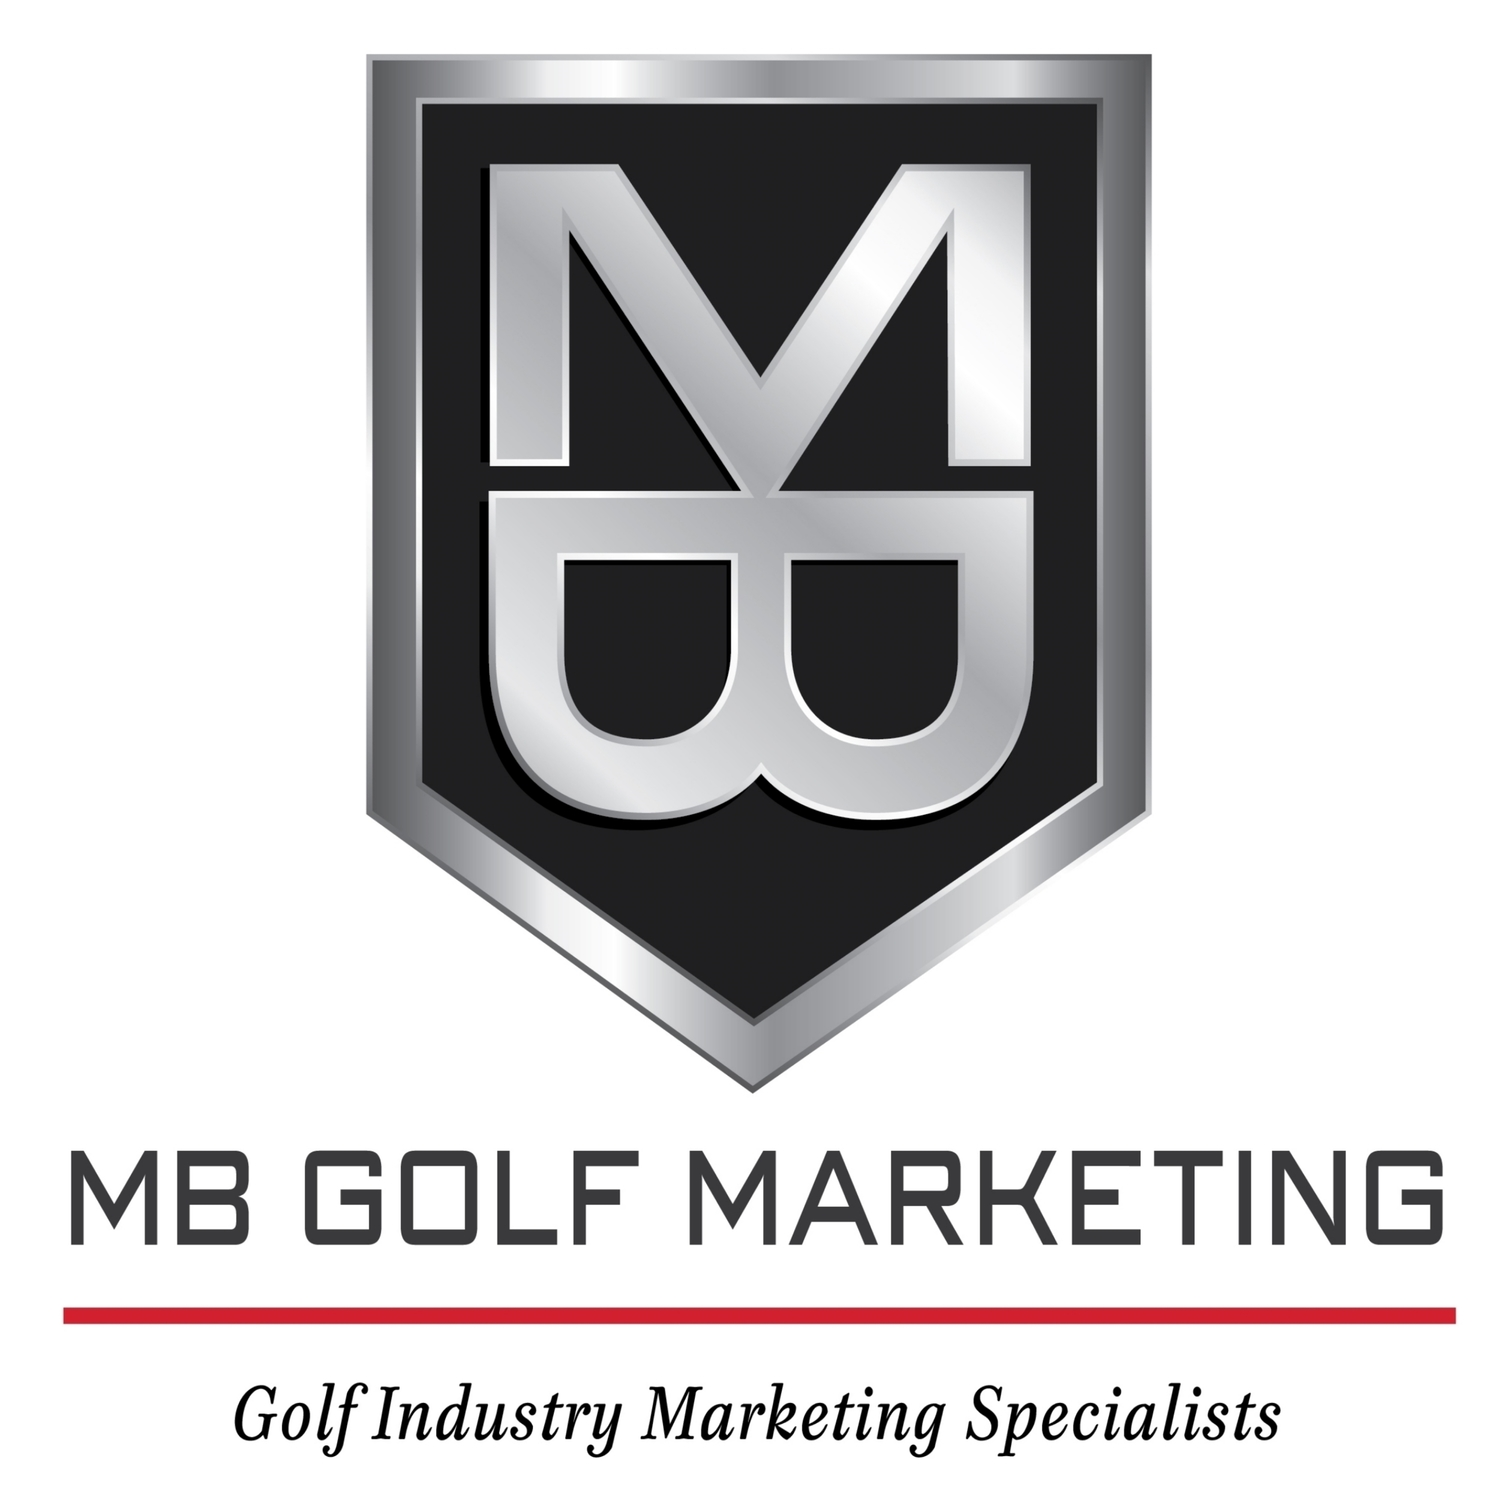 MB Golf Marketing